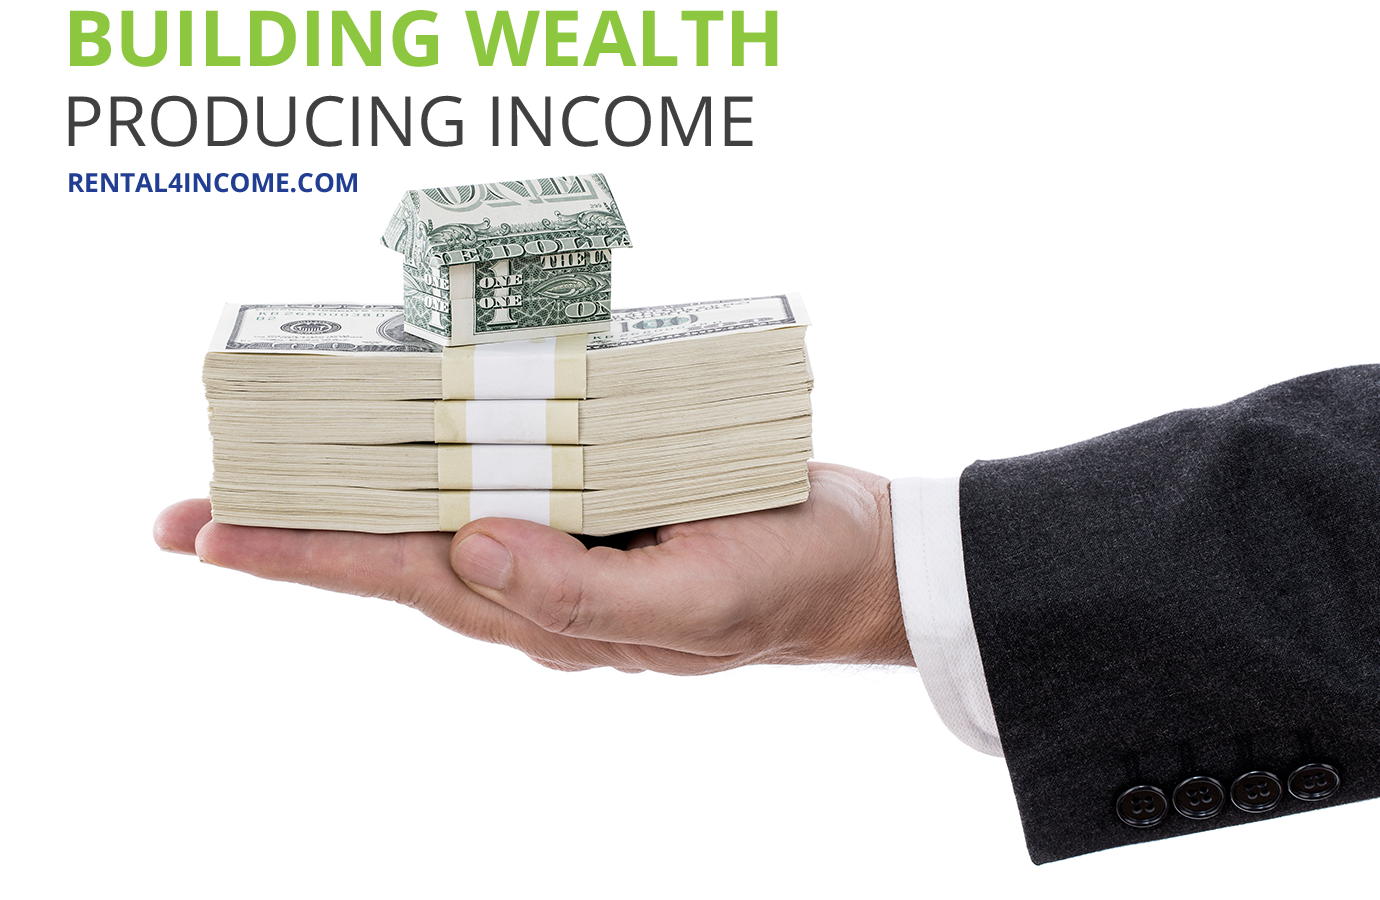 Build wealth with real estate investments.